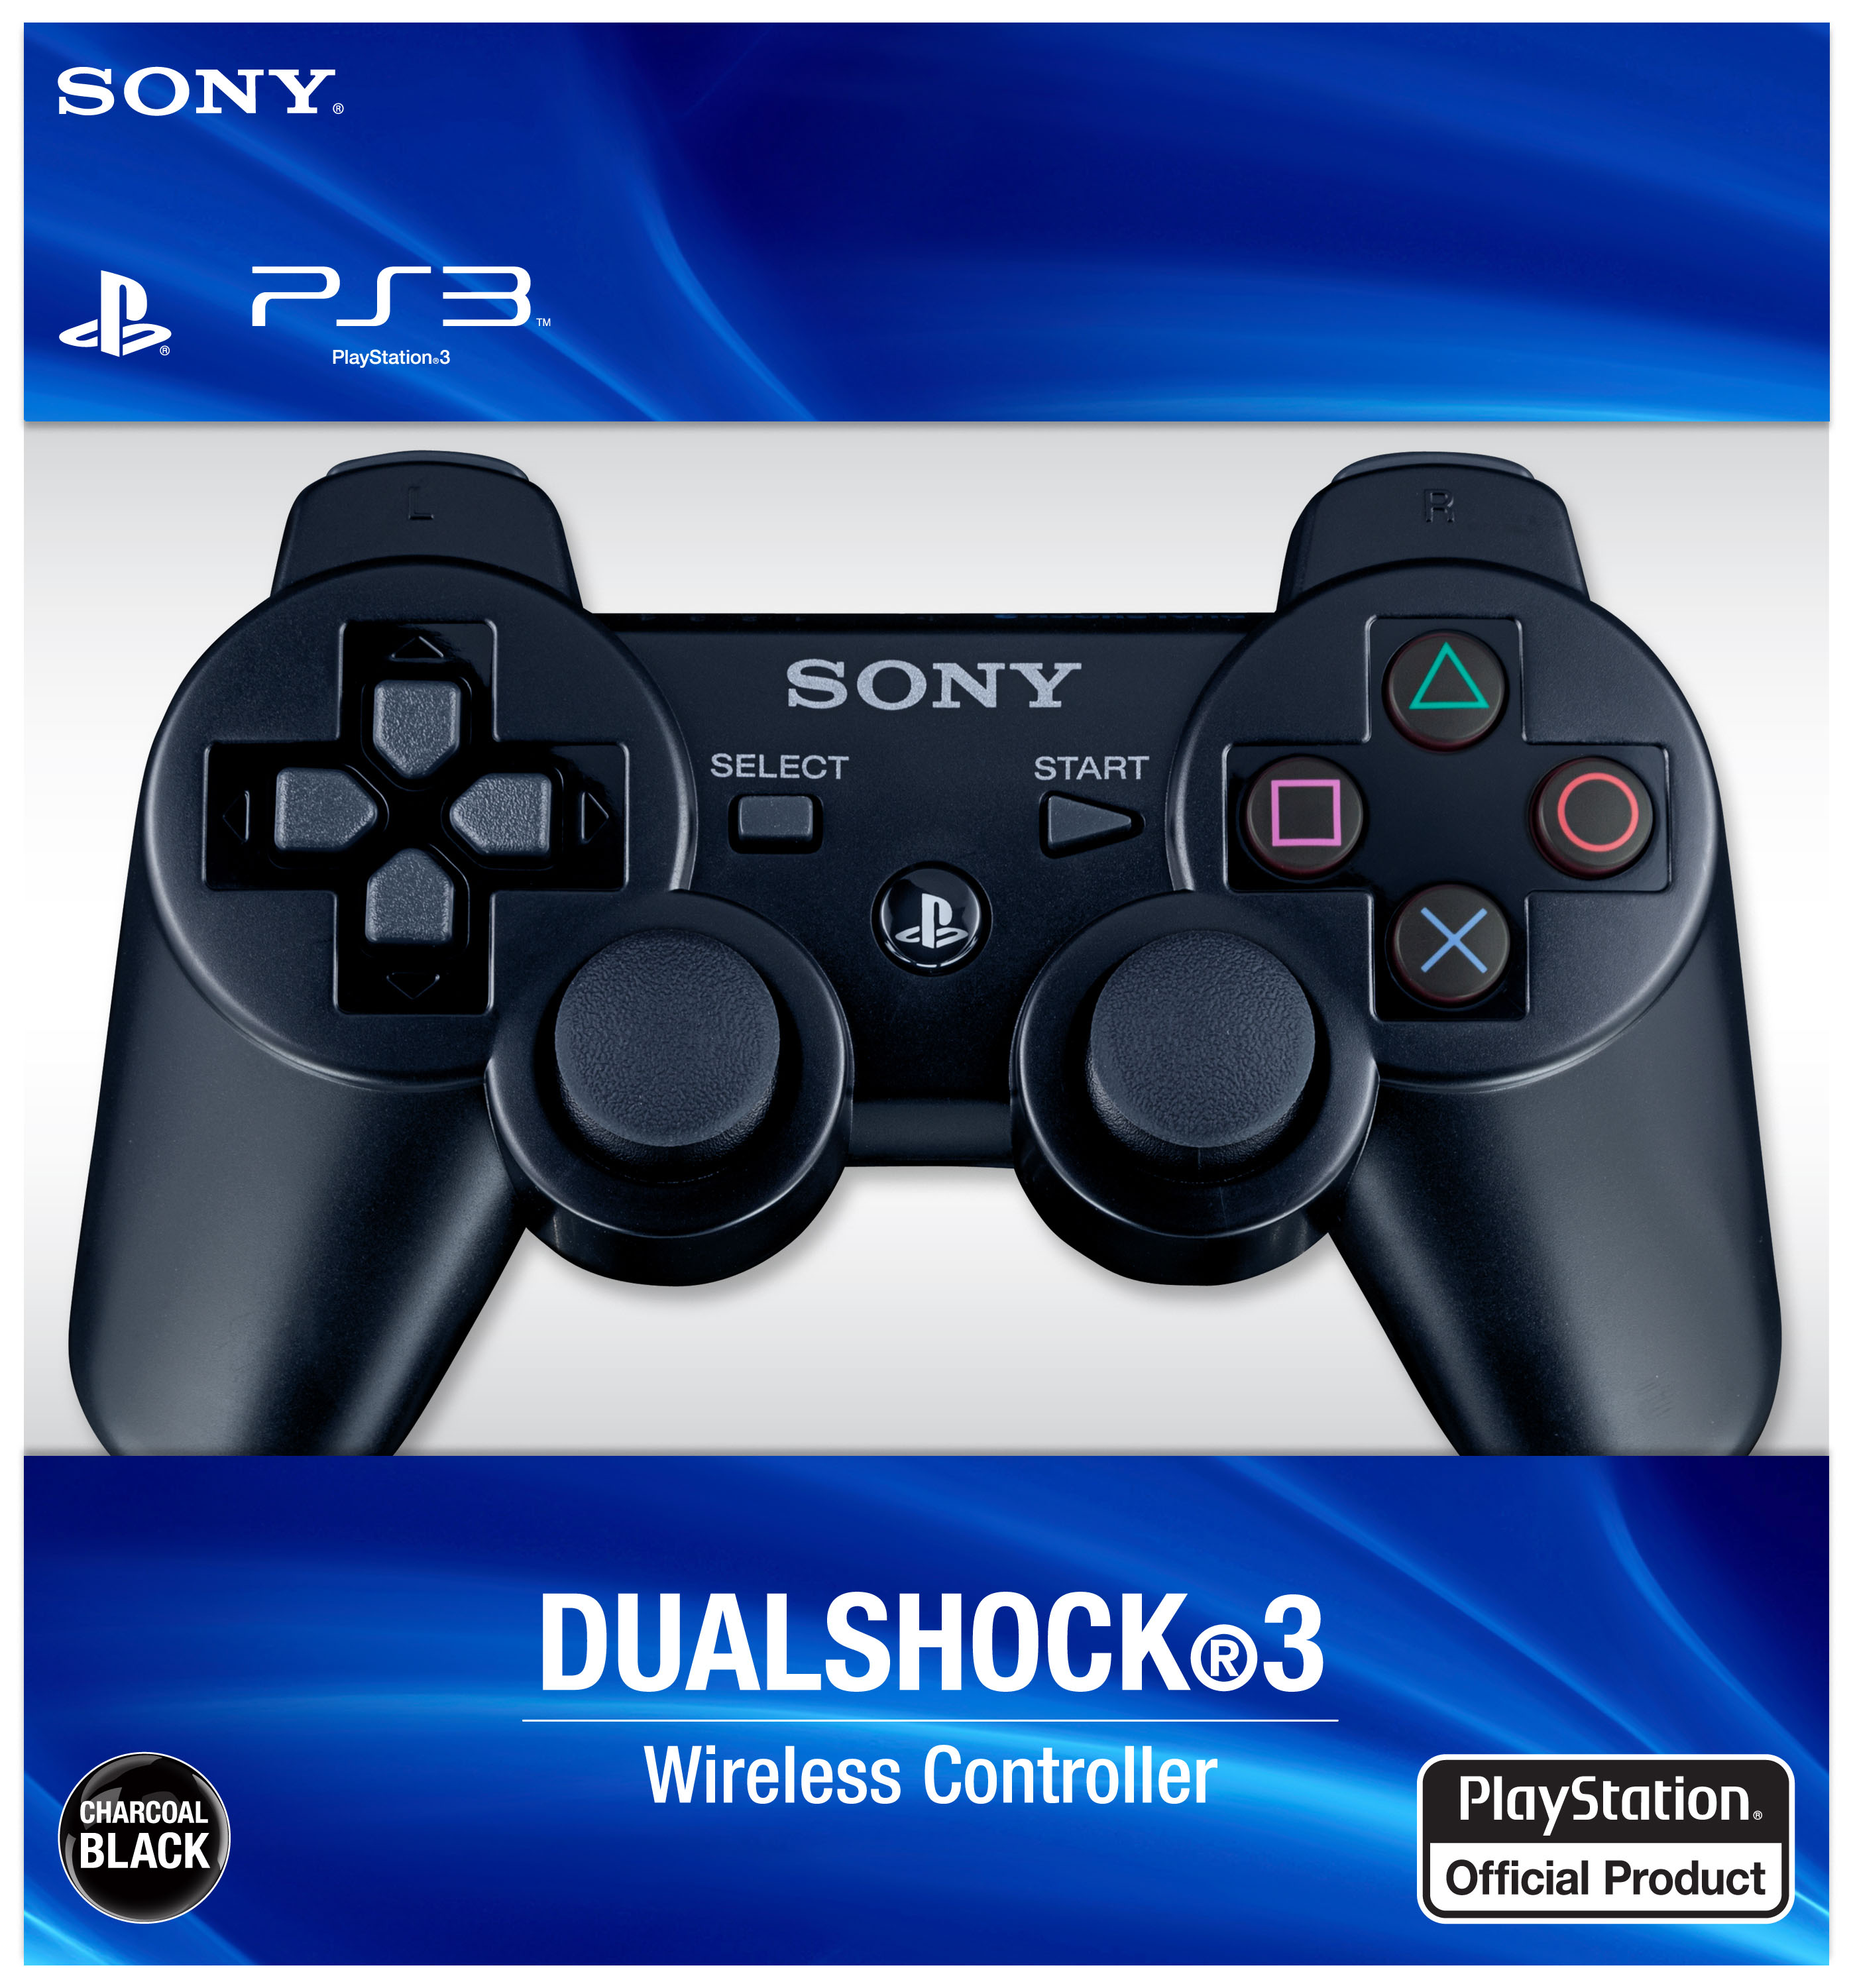 Playstation 3 Dualshock Wireless Controller Black How To Repair Your Plasystation Laser View Larger